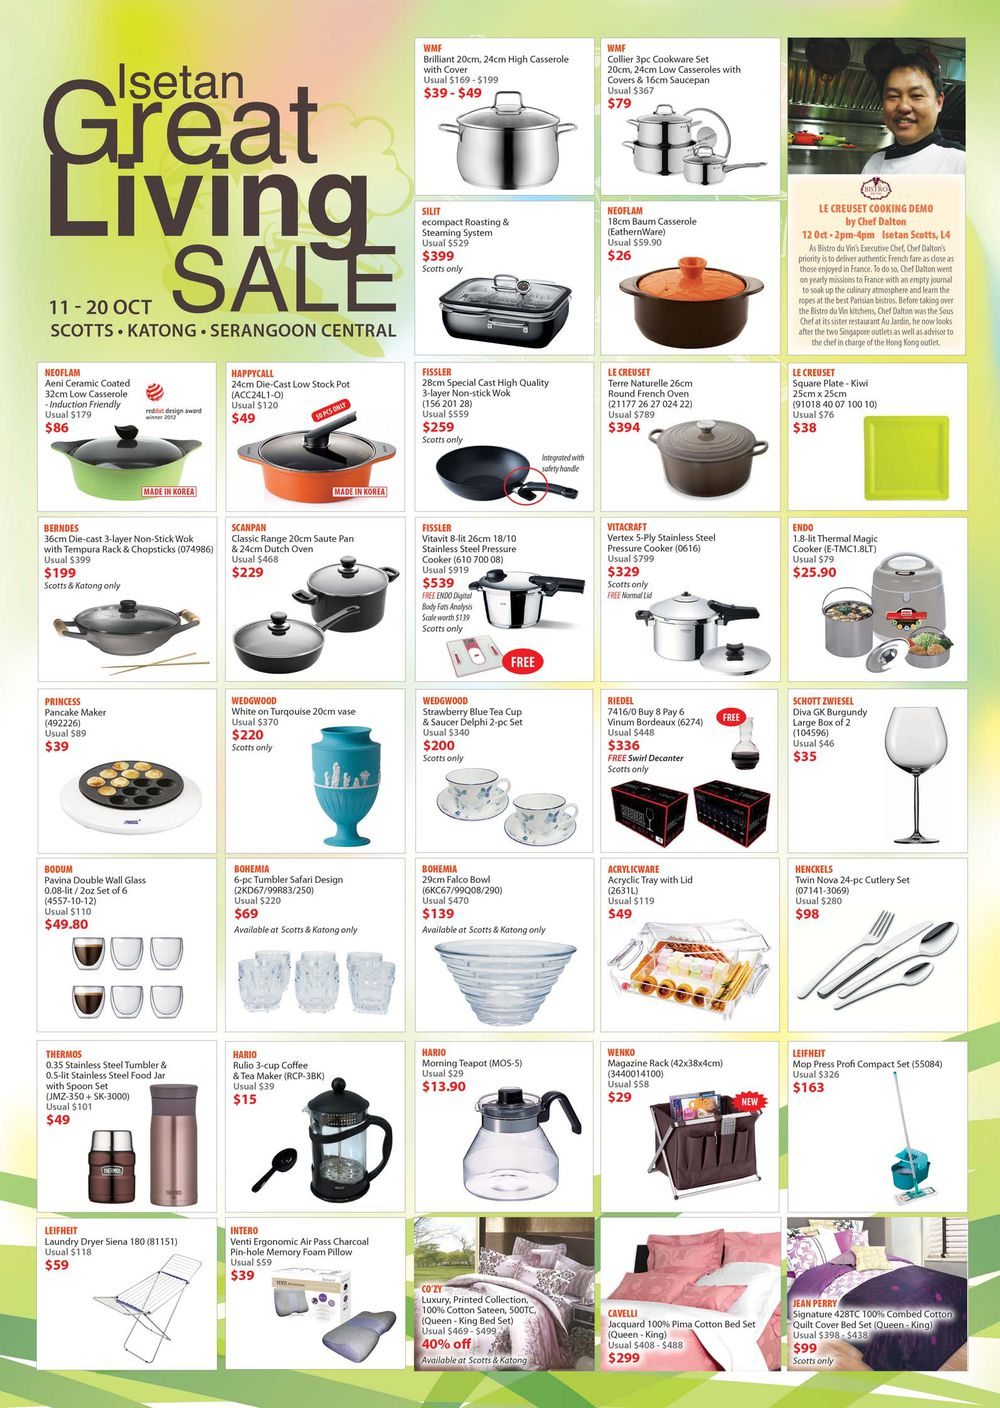 Isetan Great Living Sale October 2013, Cookware & Kitchen Accessories On Discounts